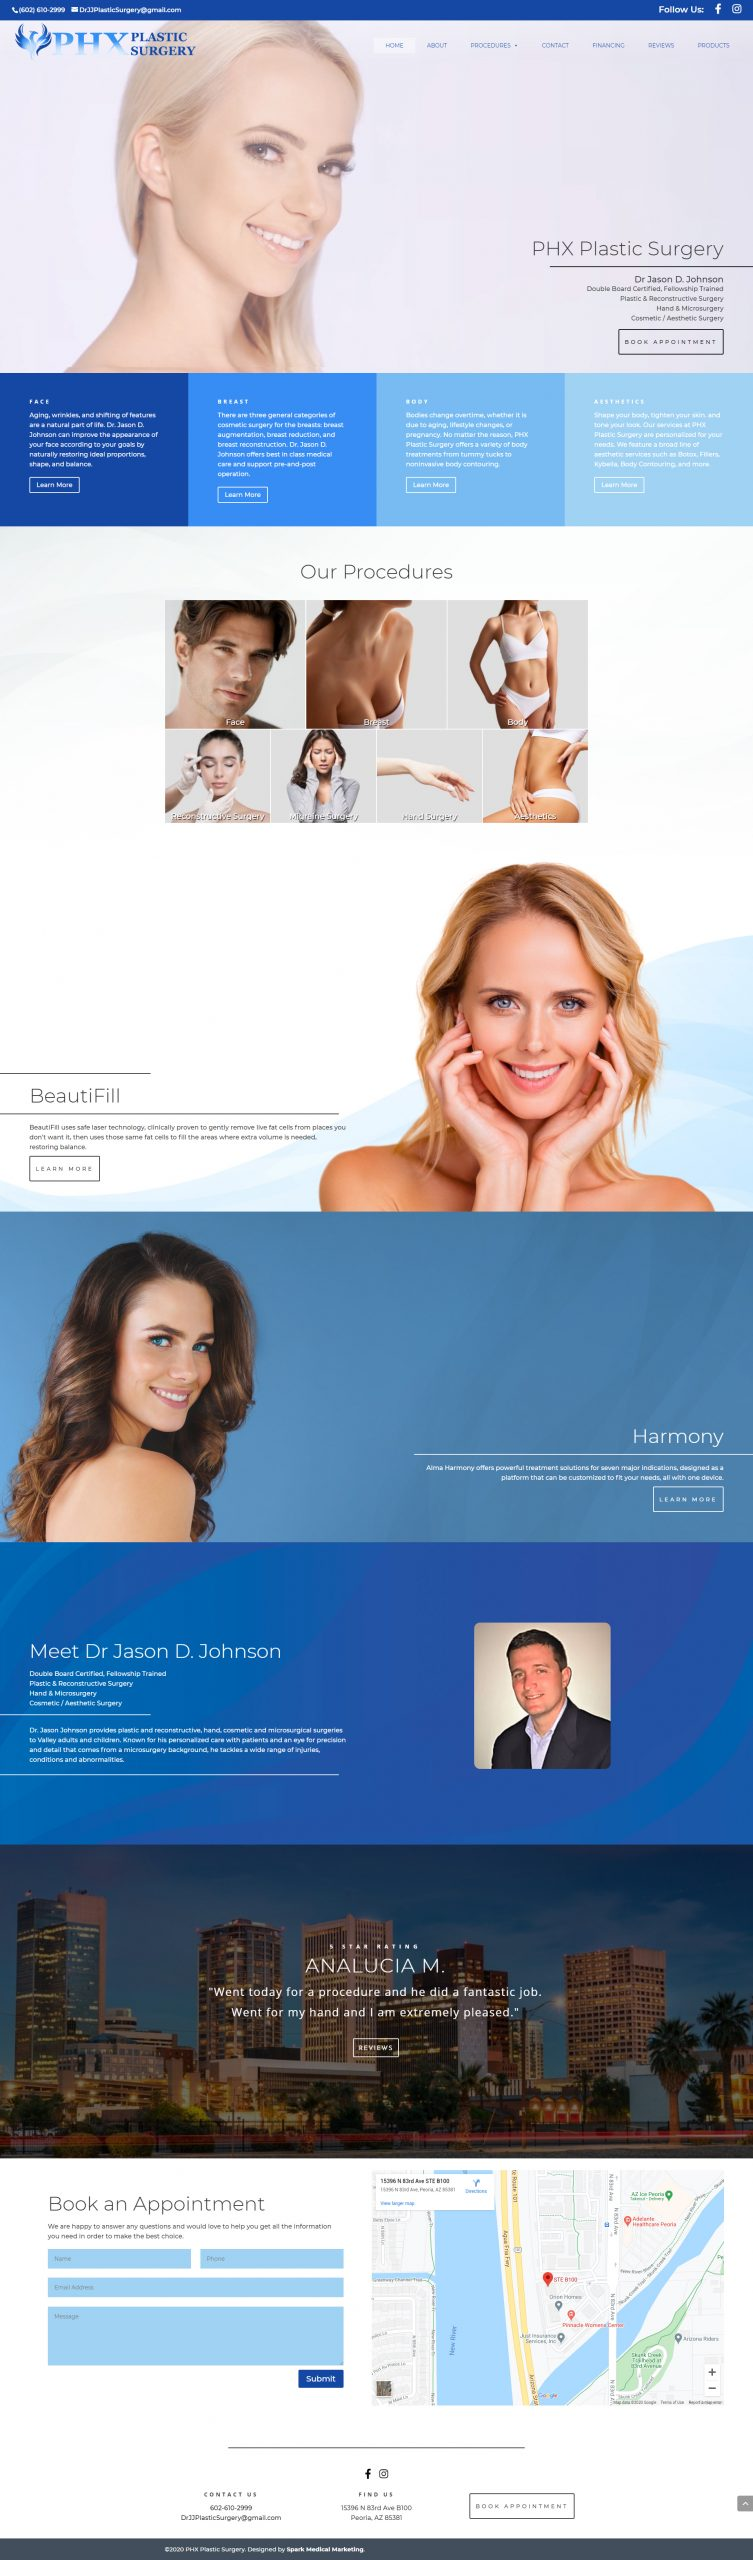 PHX Plastic Surgery